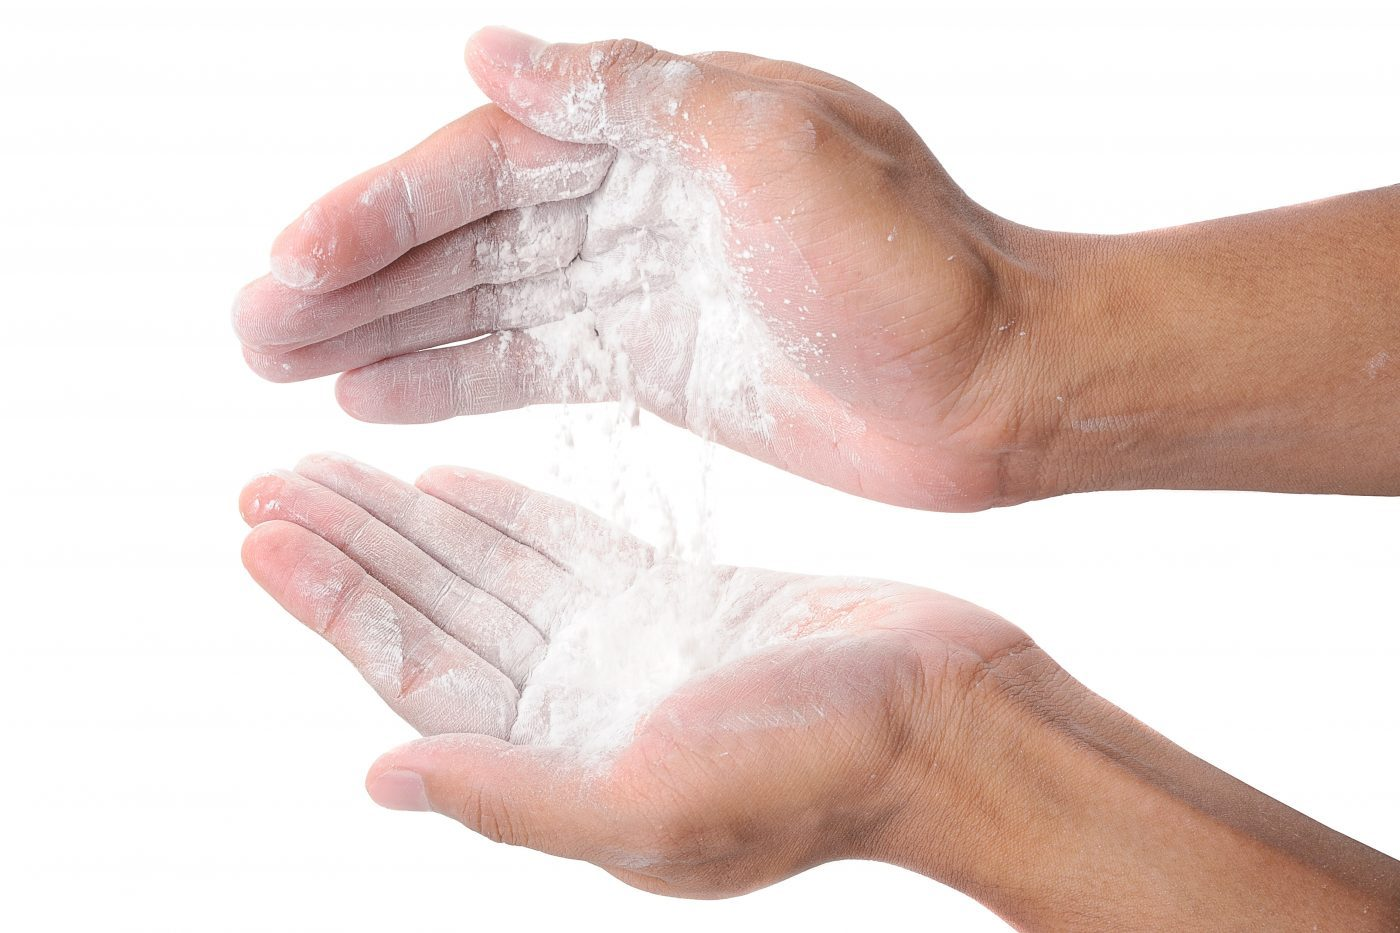 How To Use Talcum Powder For Men Manscipated